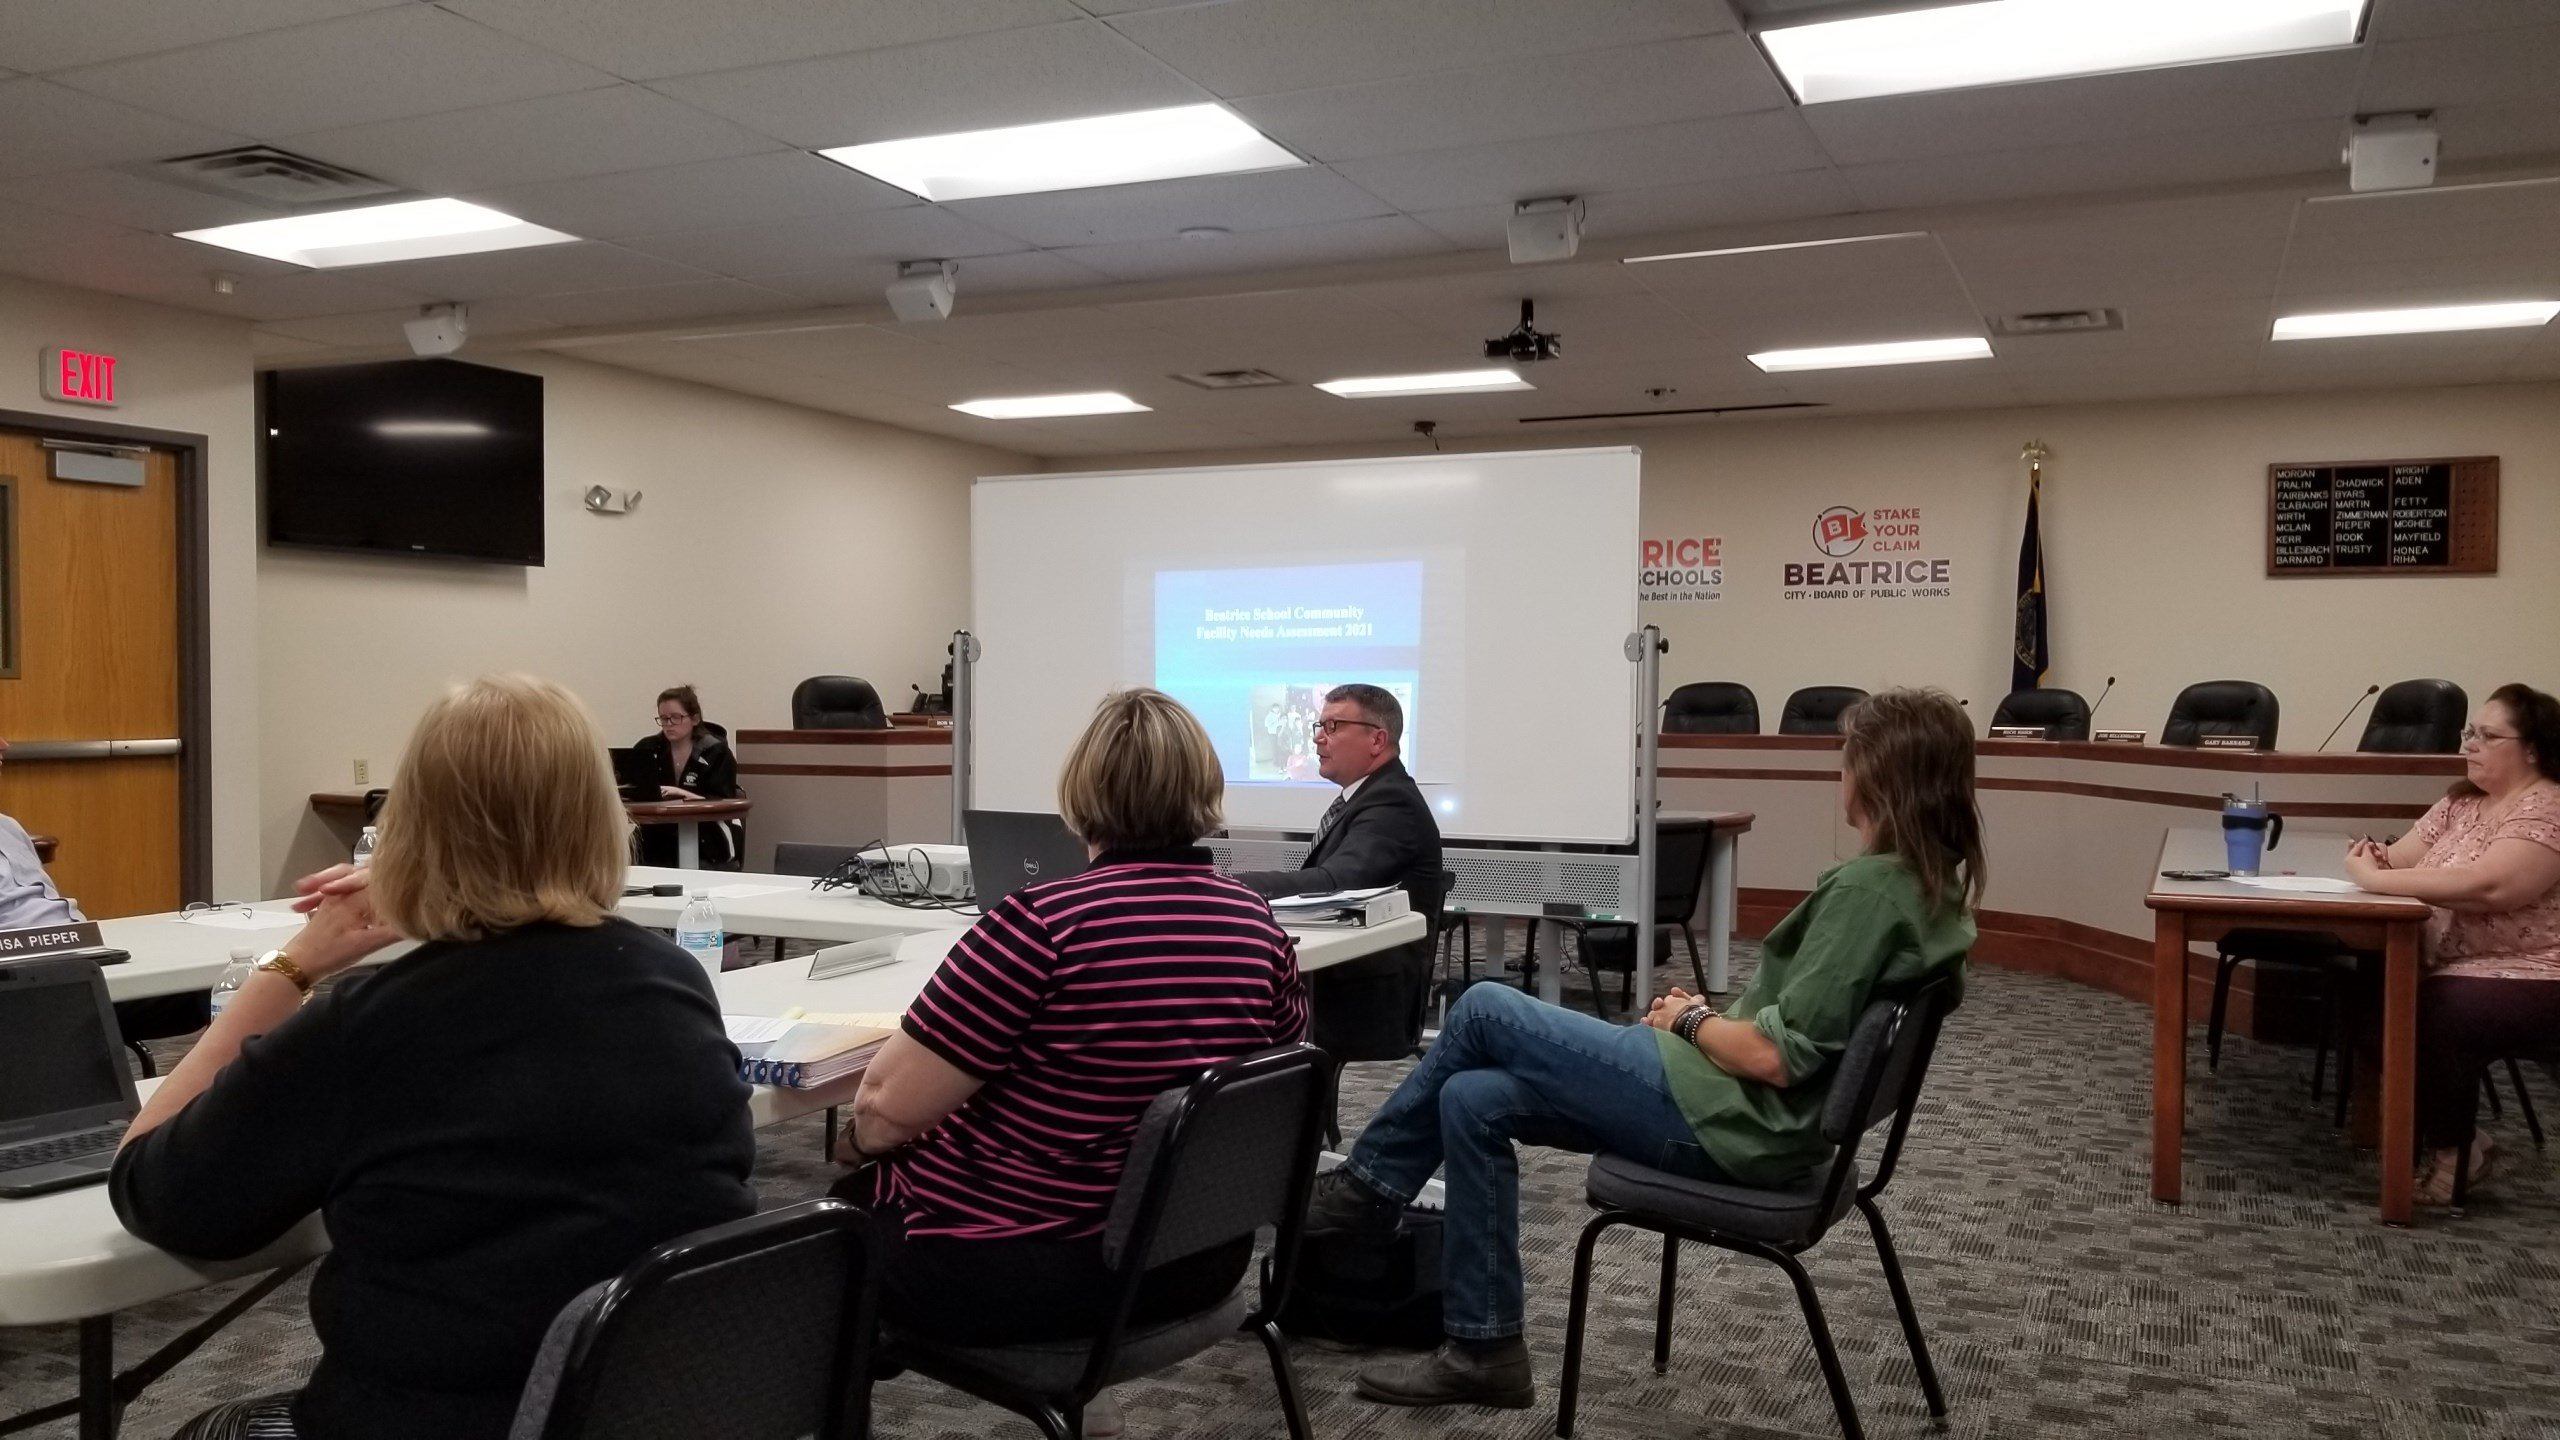 Still faced with outdated buildings, Beatrice School District reviving facility discussions